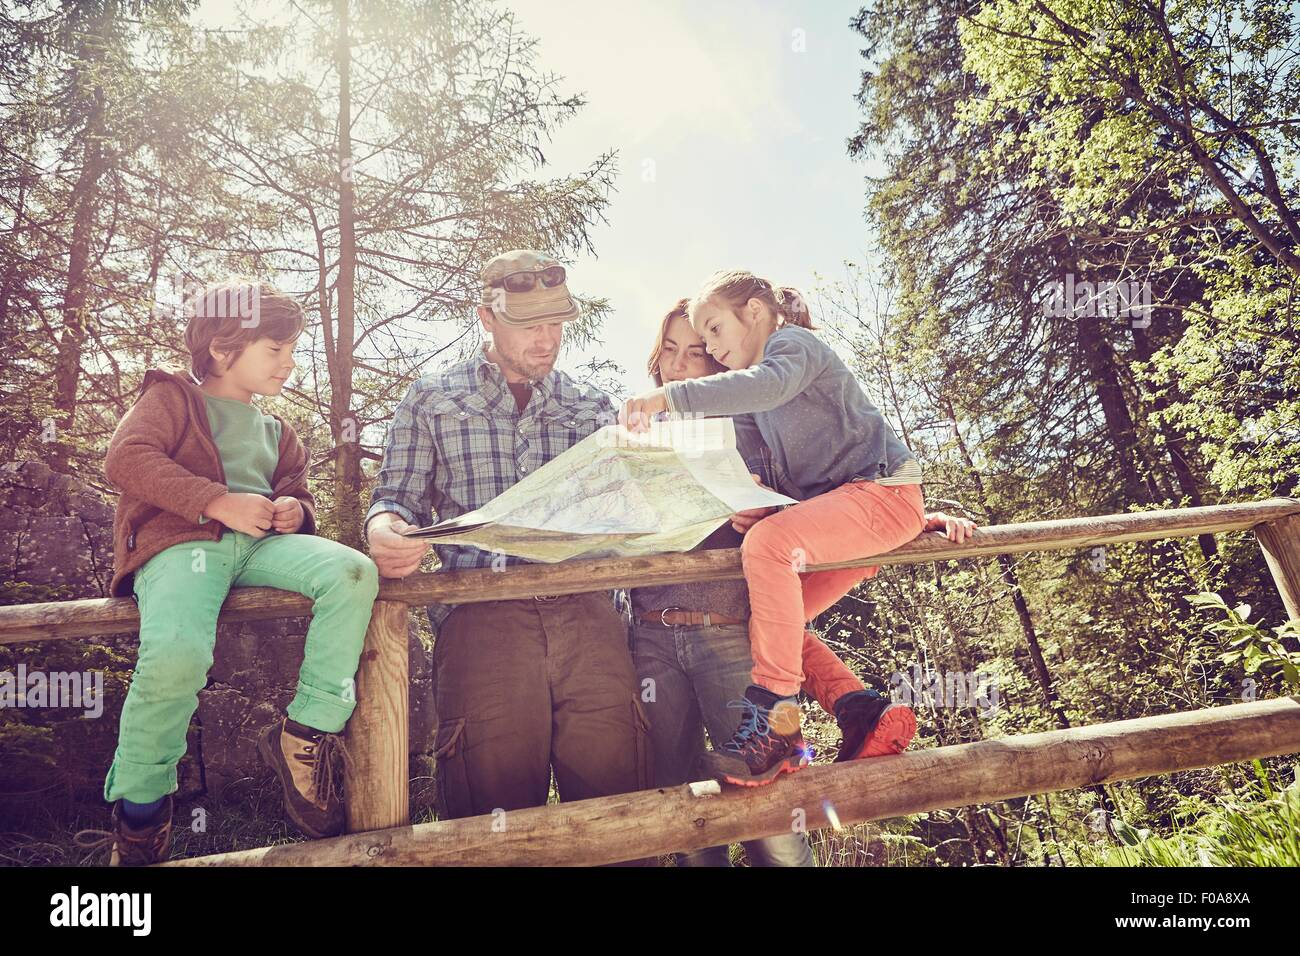 Famille en forêt, looking at map, low angle view Photo Stock